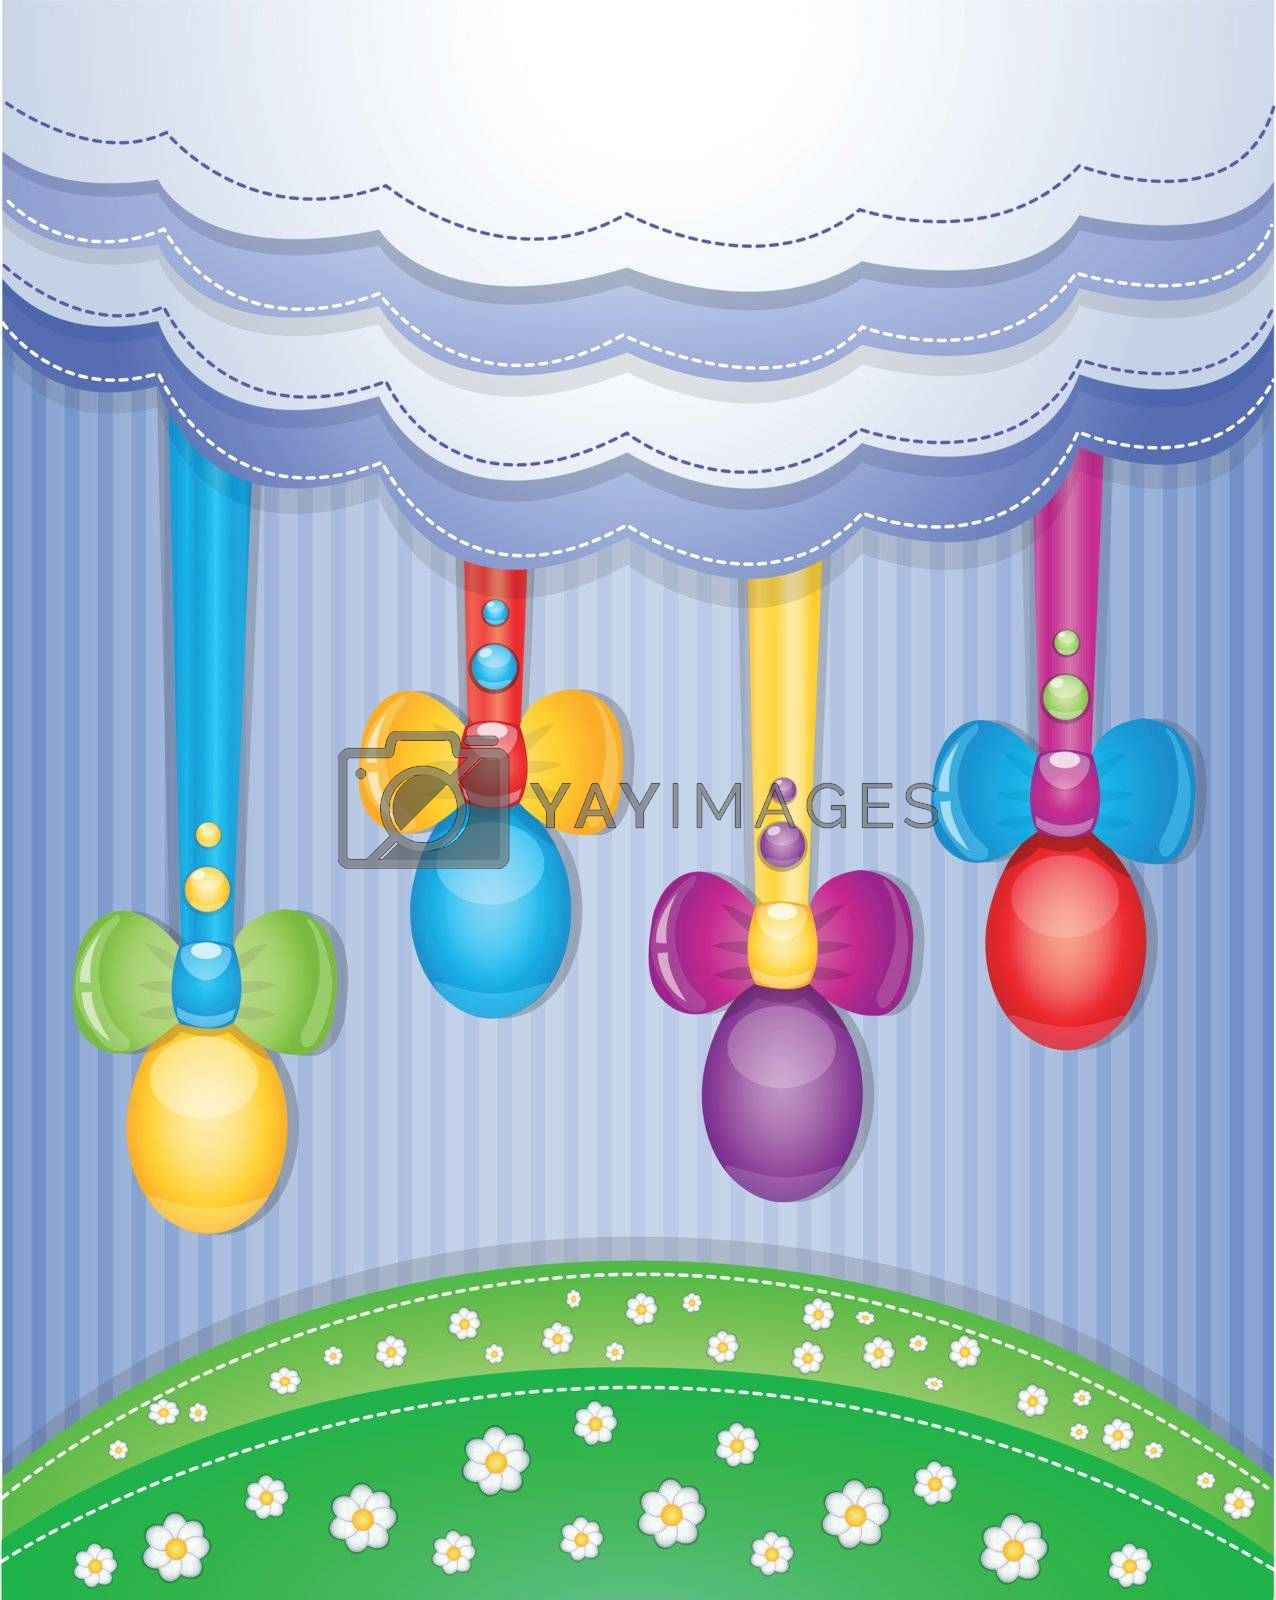 Colorful scrapbook with eggs. Illustration 10 version